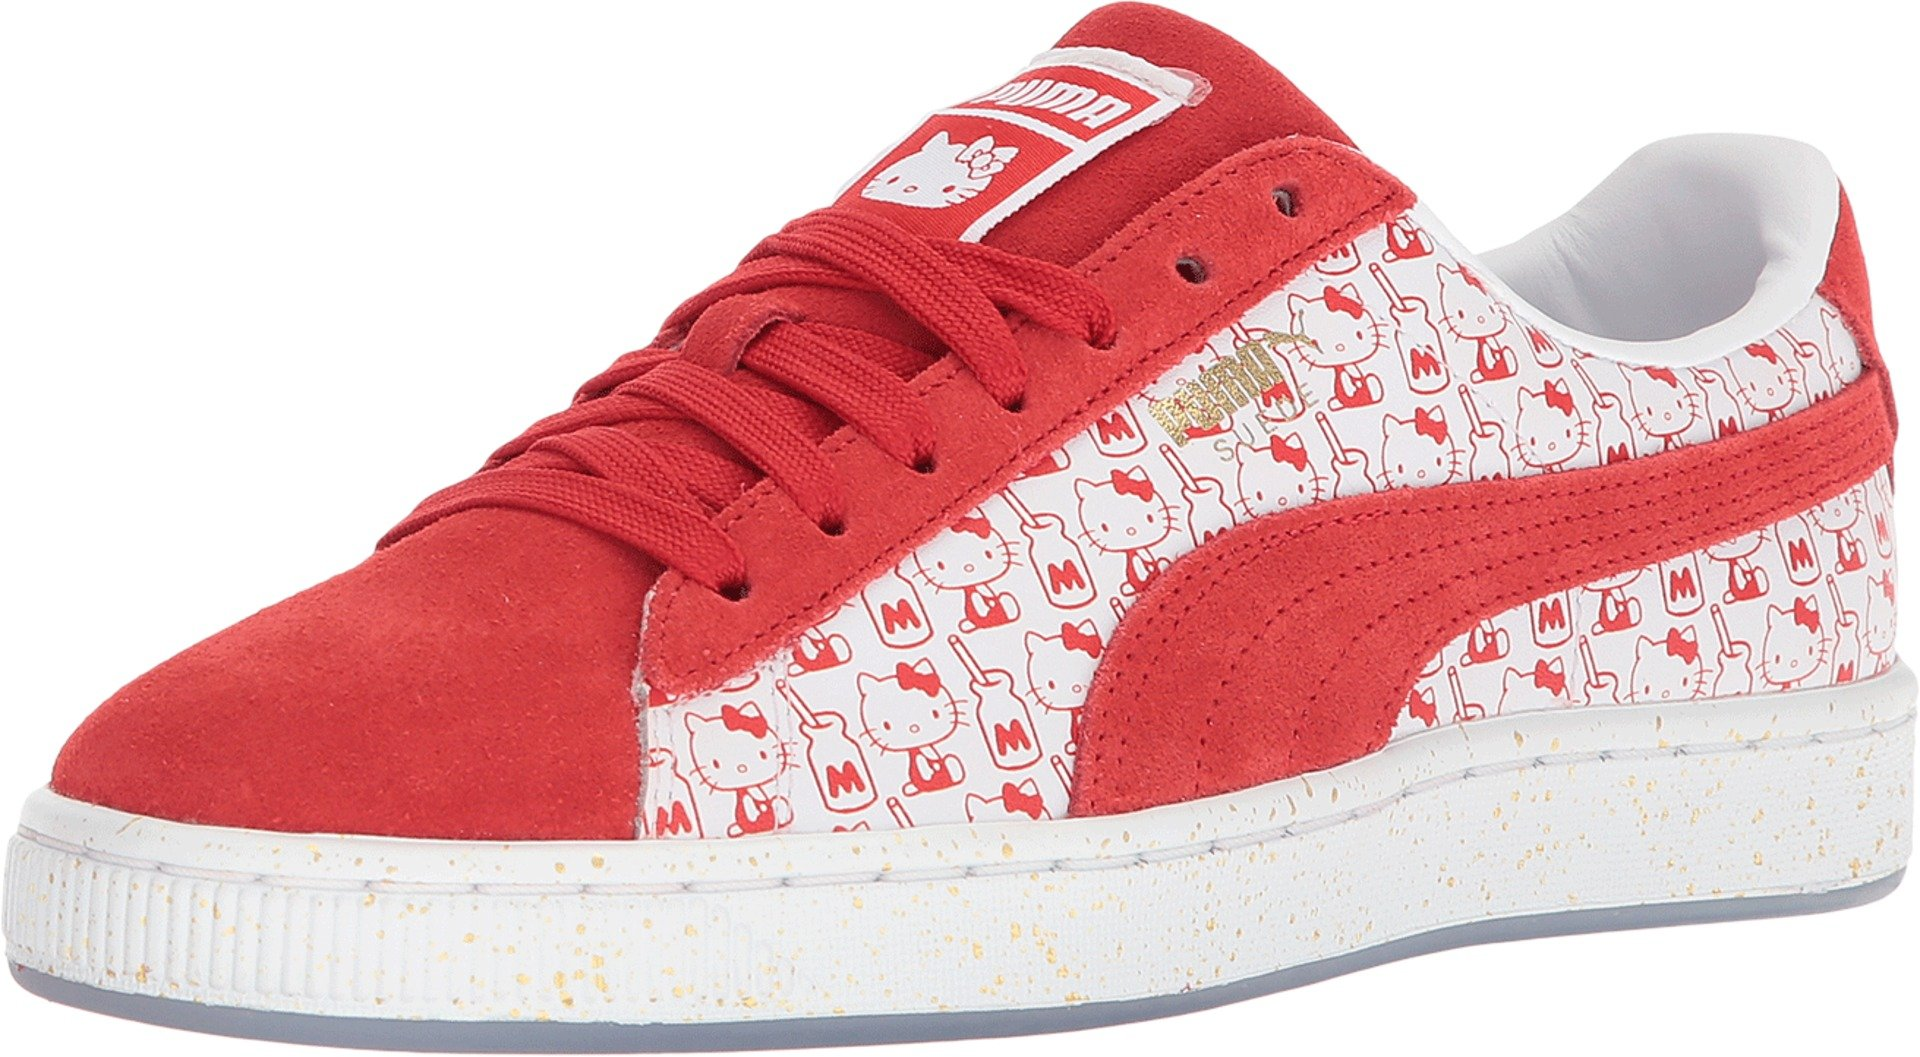 reputable site 124d3 ffde7 PUMA Suede Classic X Hello Kitty Womens Red Suede Sneakers Shoes (10 M US,  Bright Red/Bright Red)